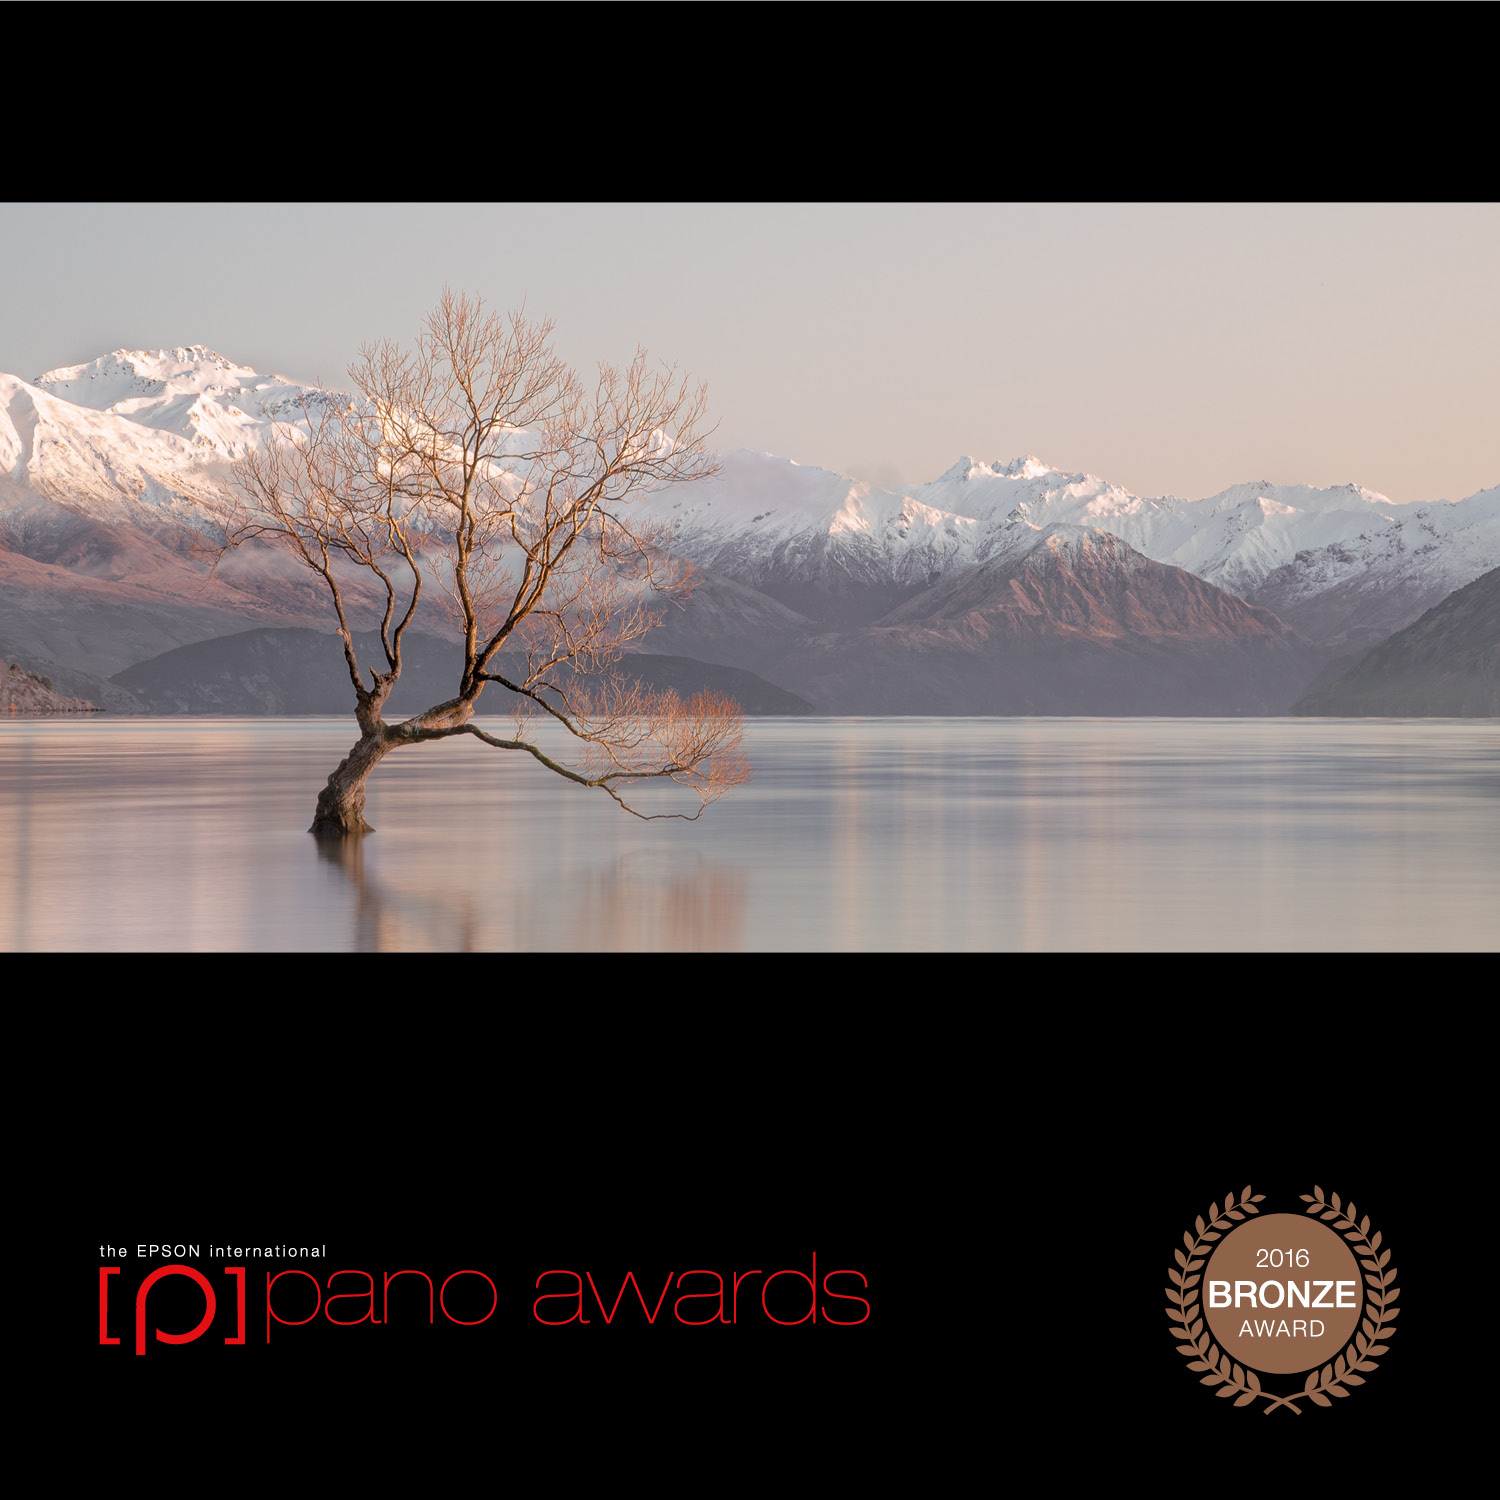 2016-Pano-Awards-Amateur-Bronze-439.jpg